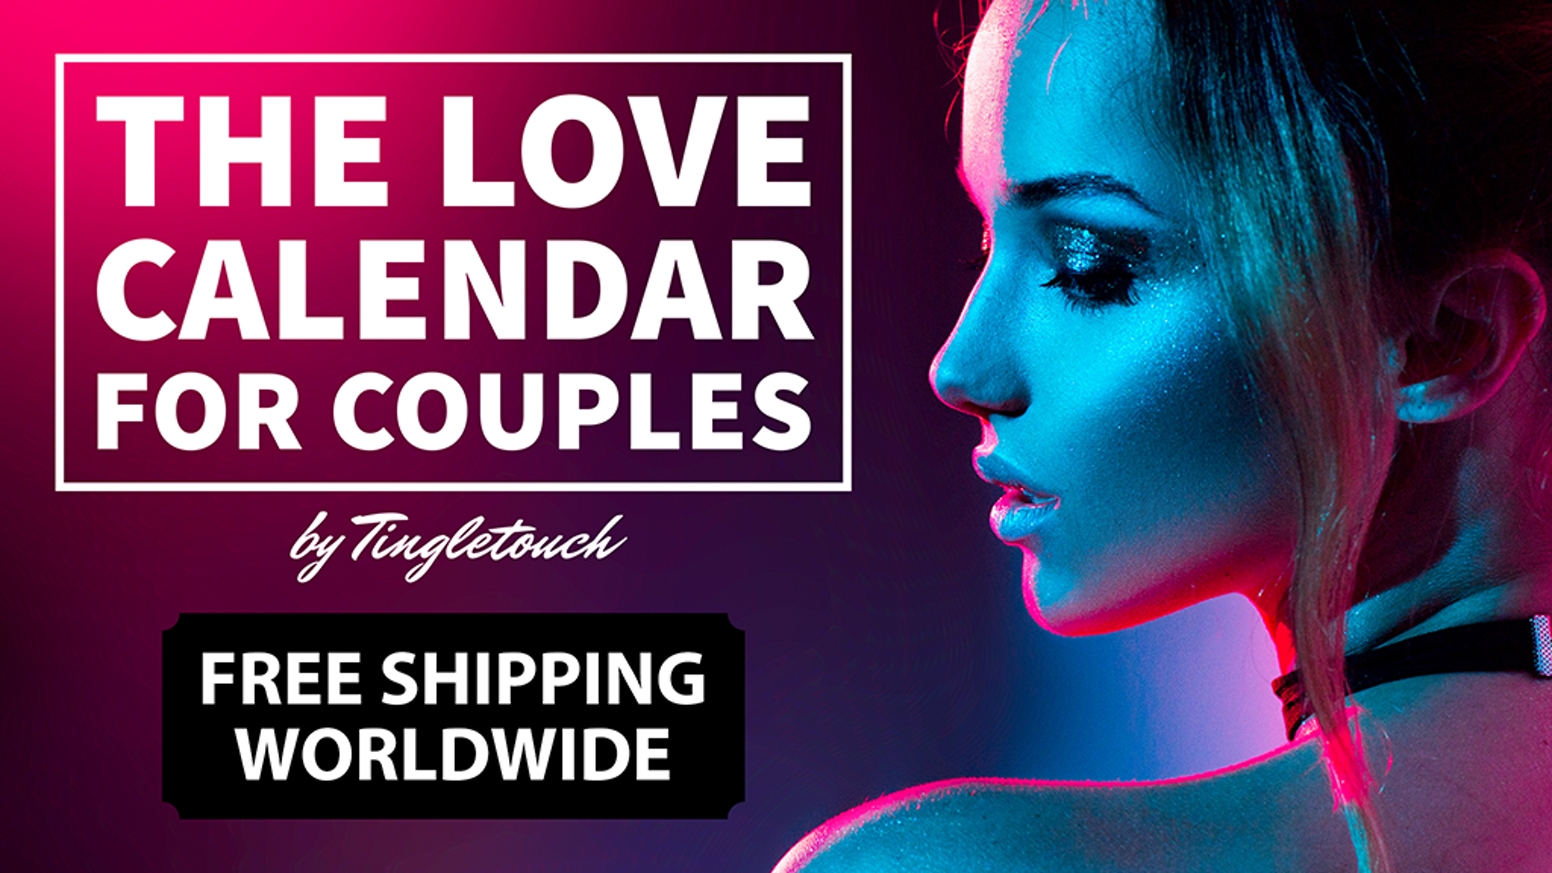 Do you want more sex, fun, and romance in your relationship? Then please subscribe to our mailing list to be notified when the calendars are officially released.